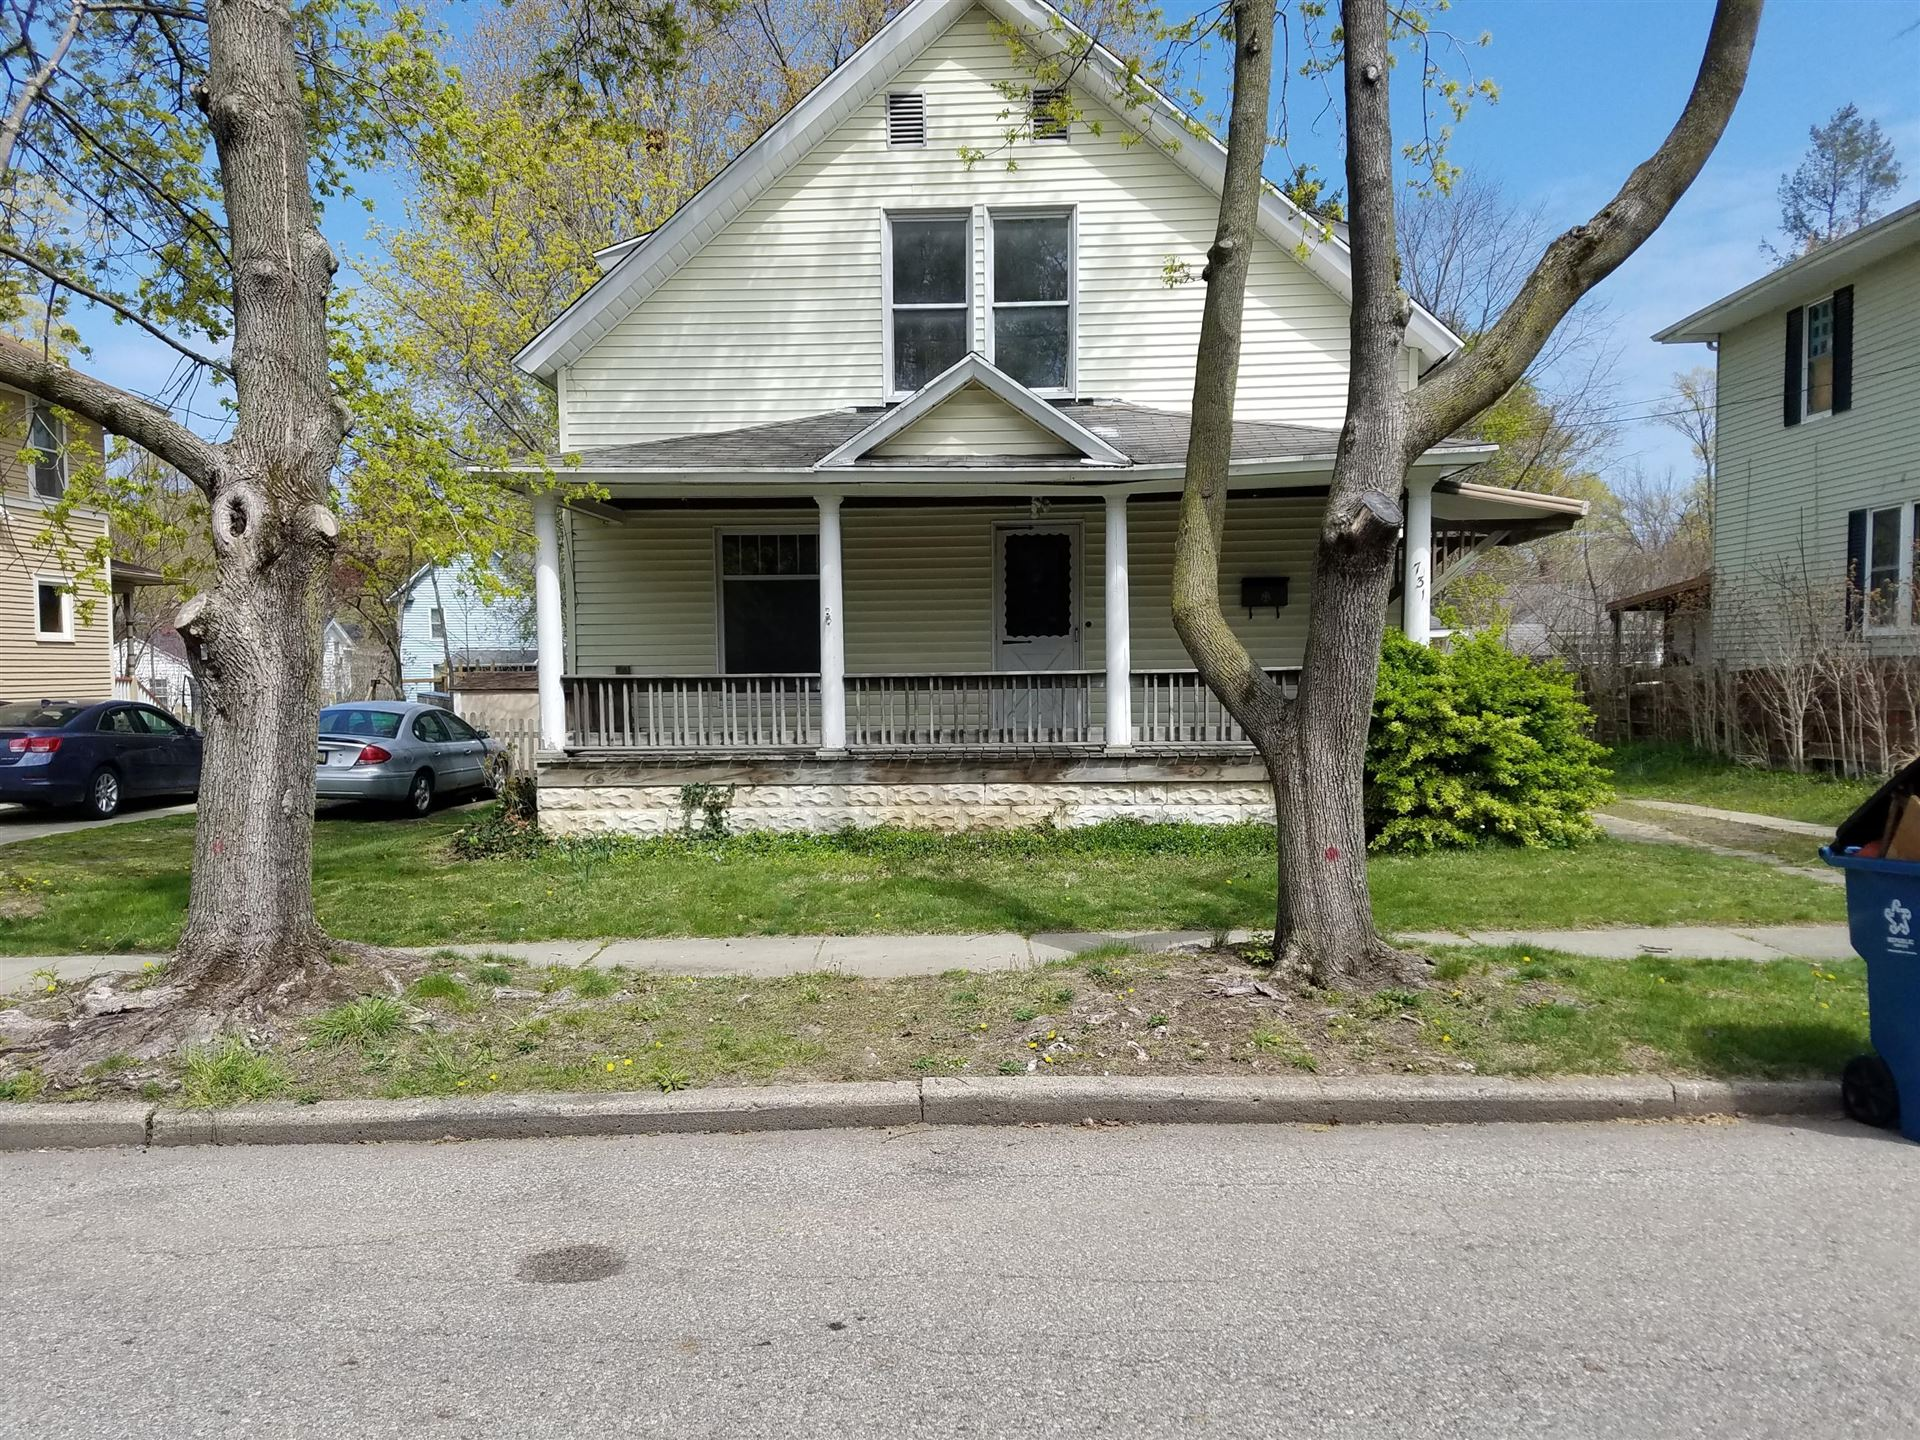 731 Maple Street, Niles, MI 49120 - MLS#: 21013855